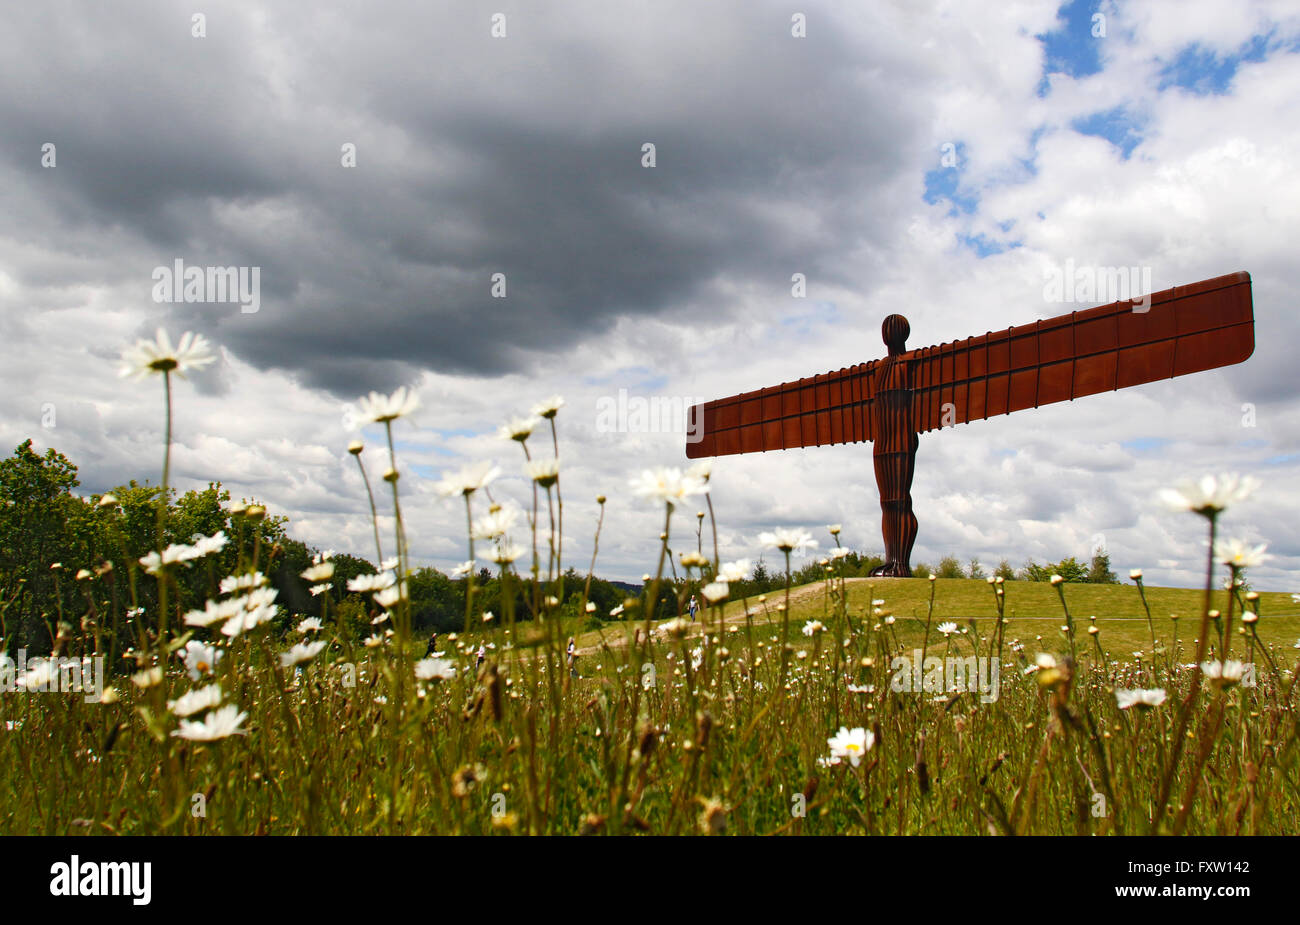 ANTONY GORMLEY SCULPTURE THE ANGEL OF THE NORTH GATESHEAD & TYNE AND WEAR 09 June 2015 - Stock Image